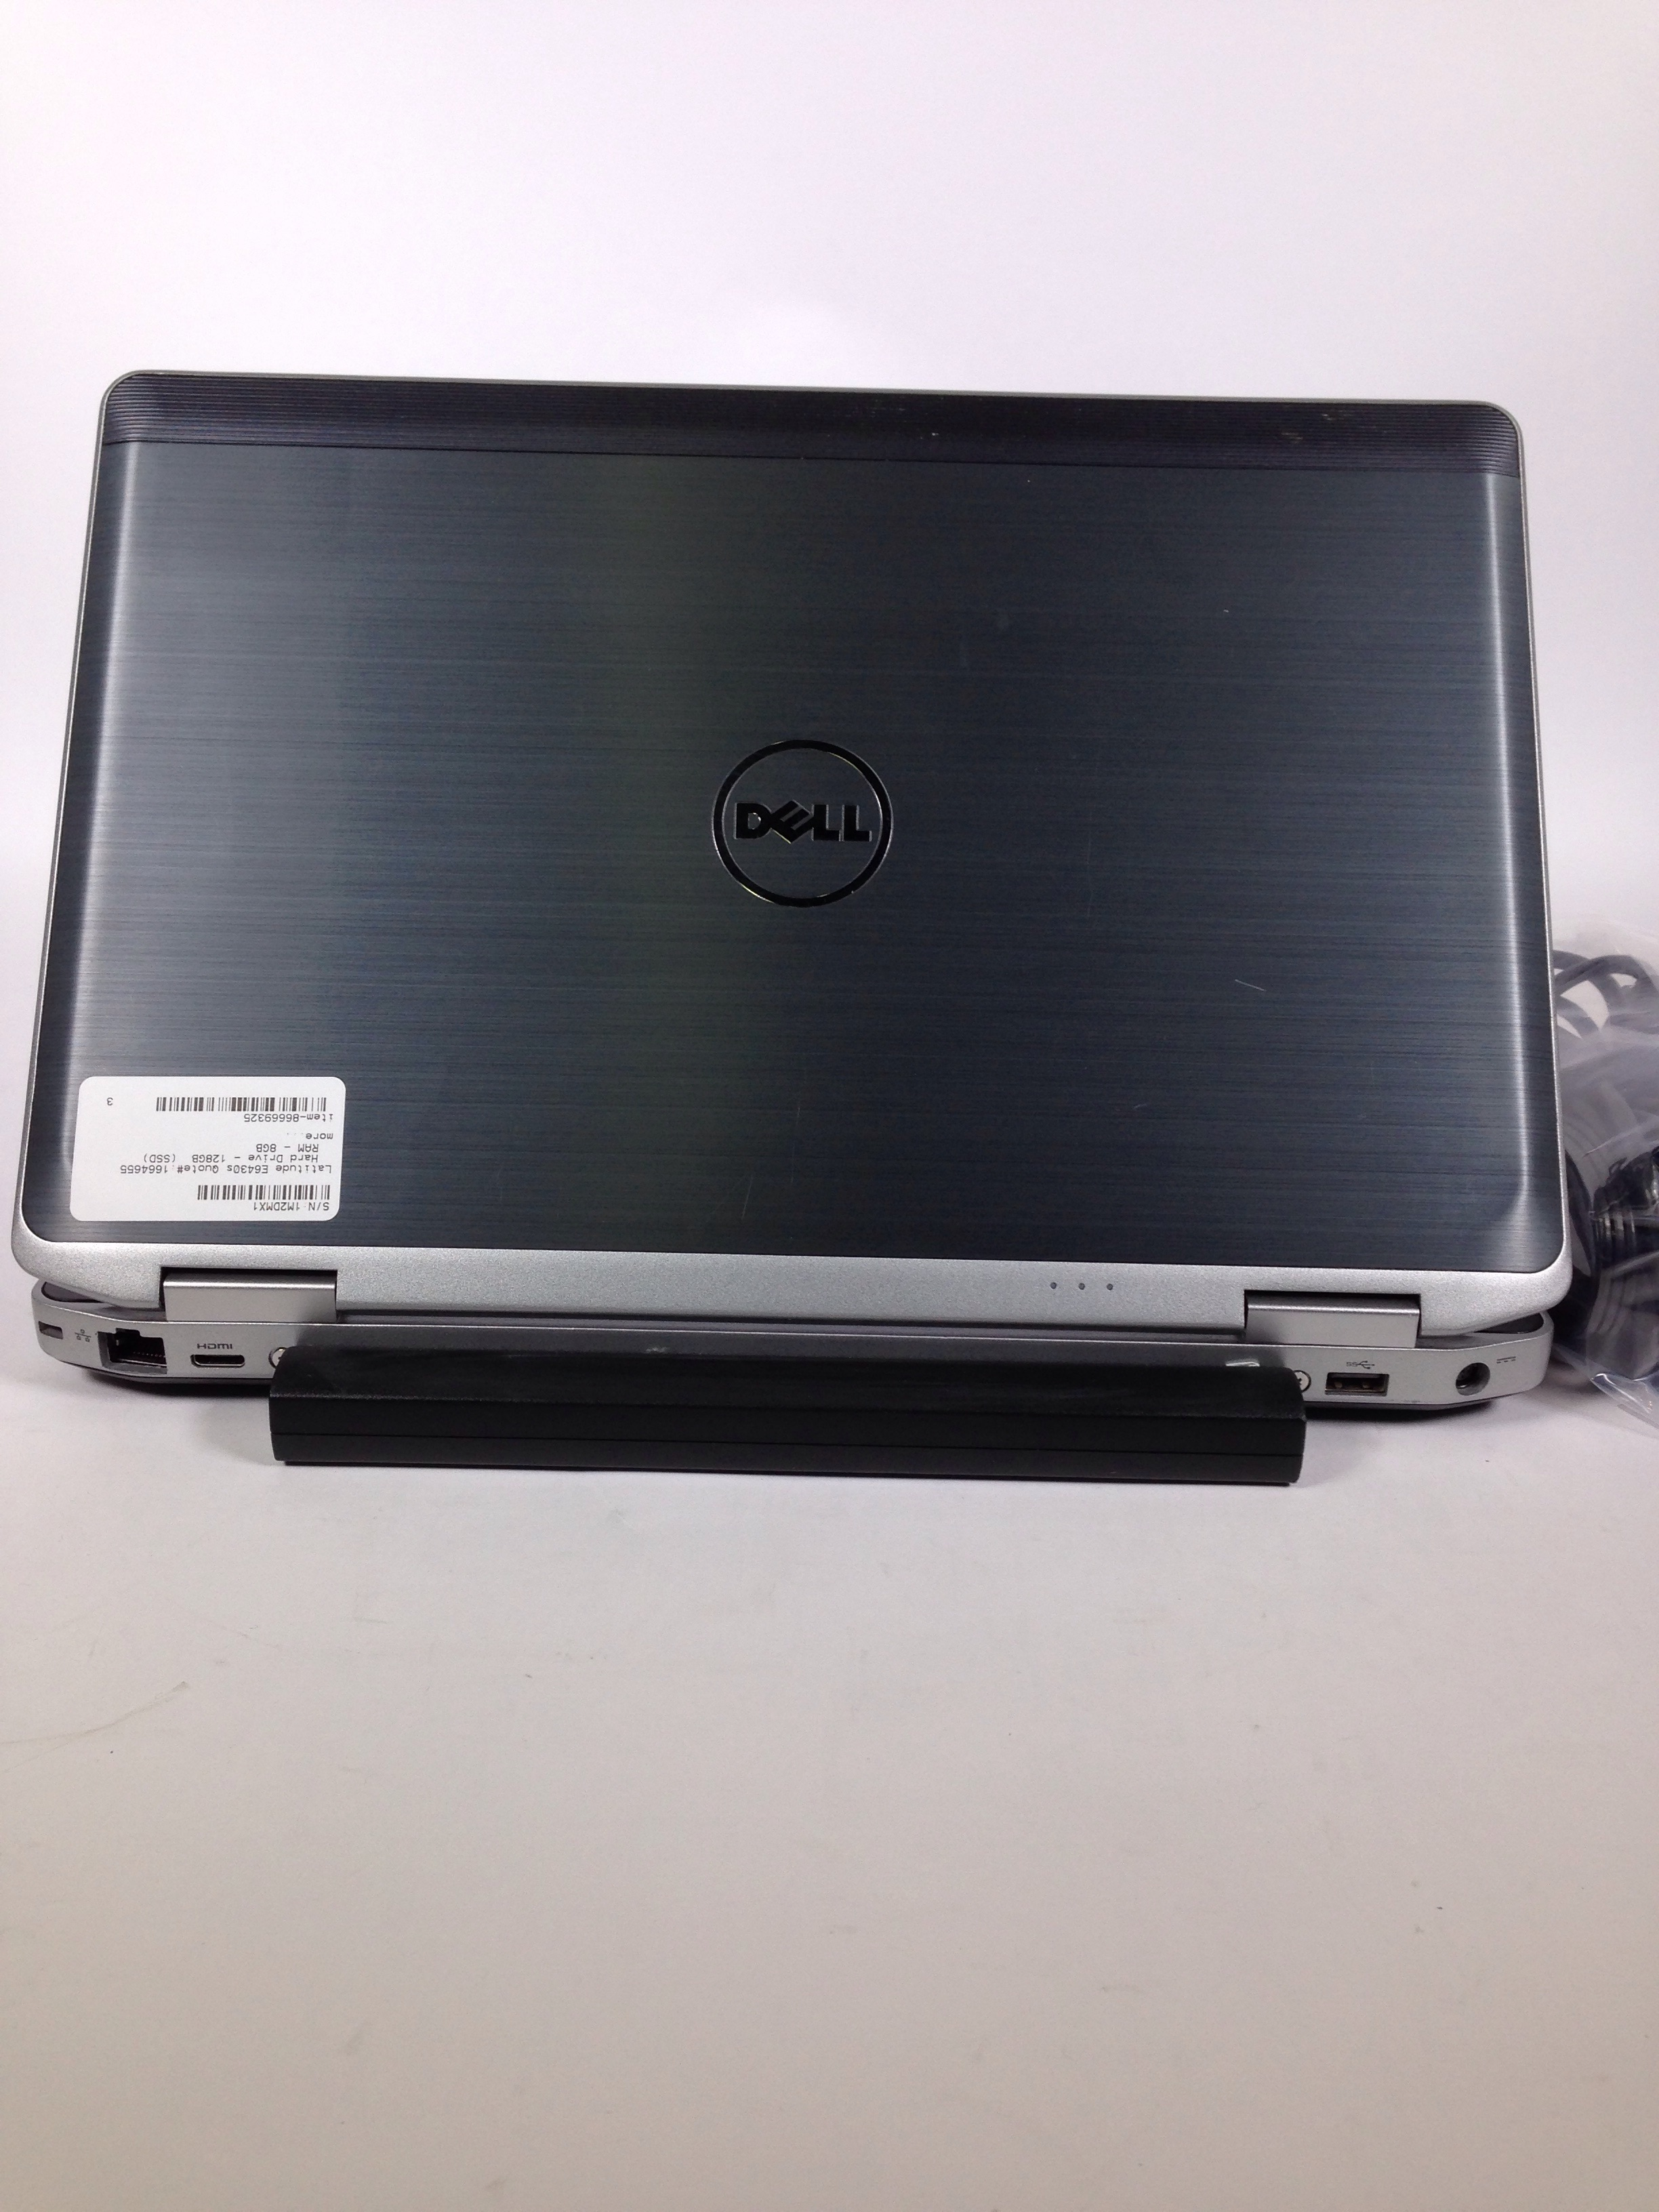 DELL LATITUDE E6430 | i7 3 0GHz | 8GB 128GB SSD | WIN10 | FAIR CONDITION* |  eBay